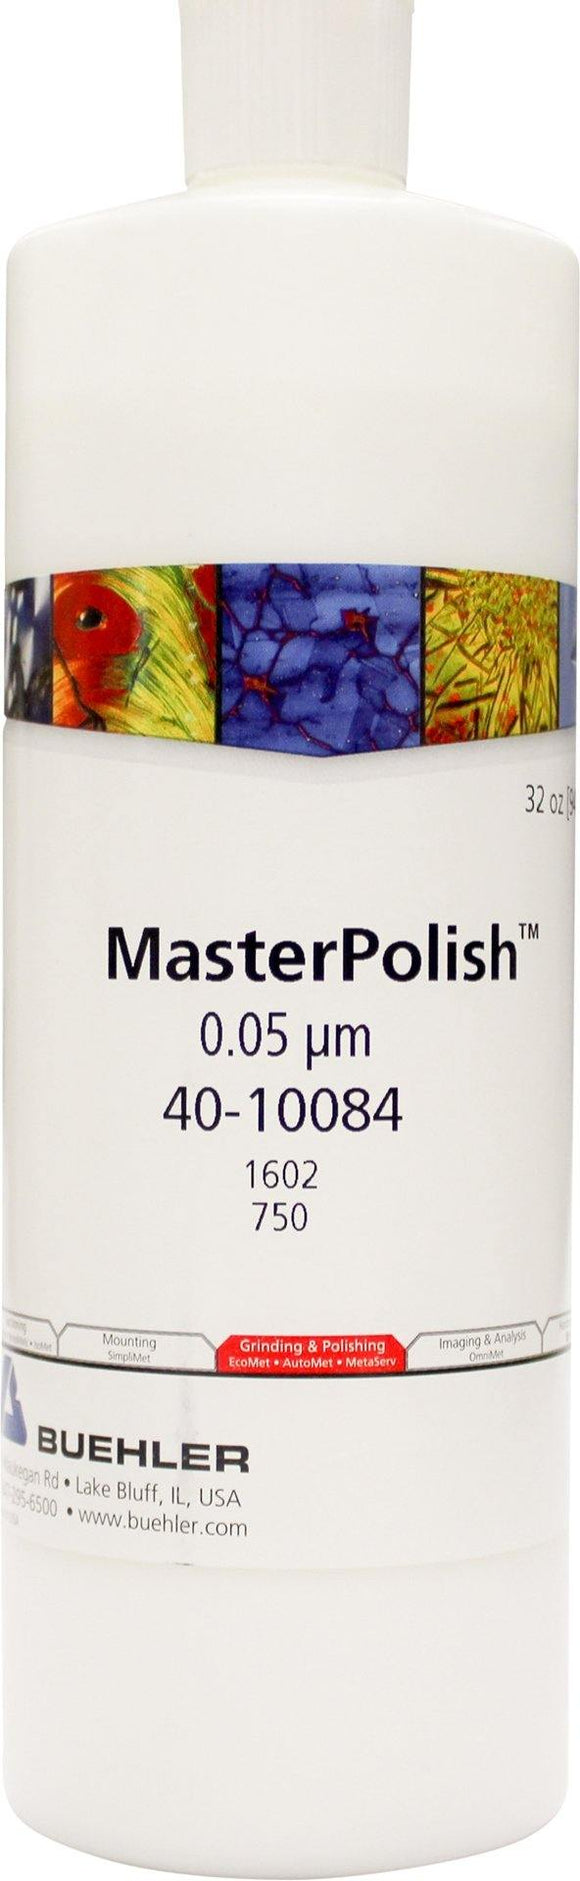 MasterPolish Suspension, 32oz